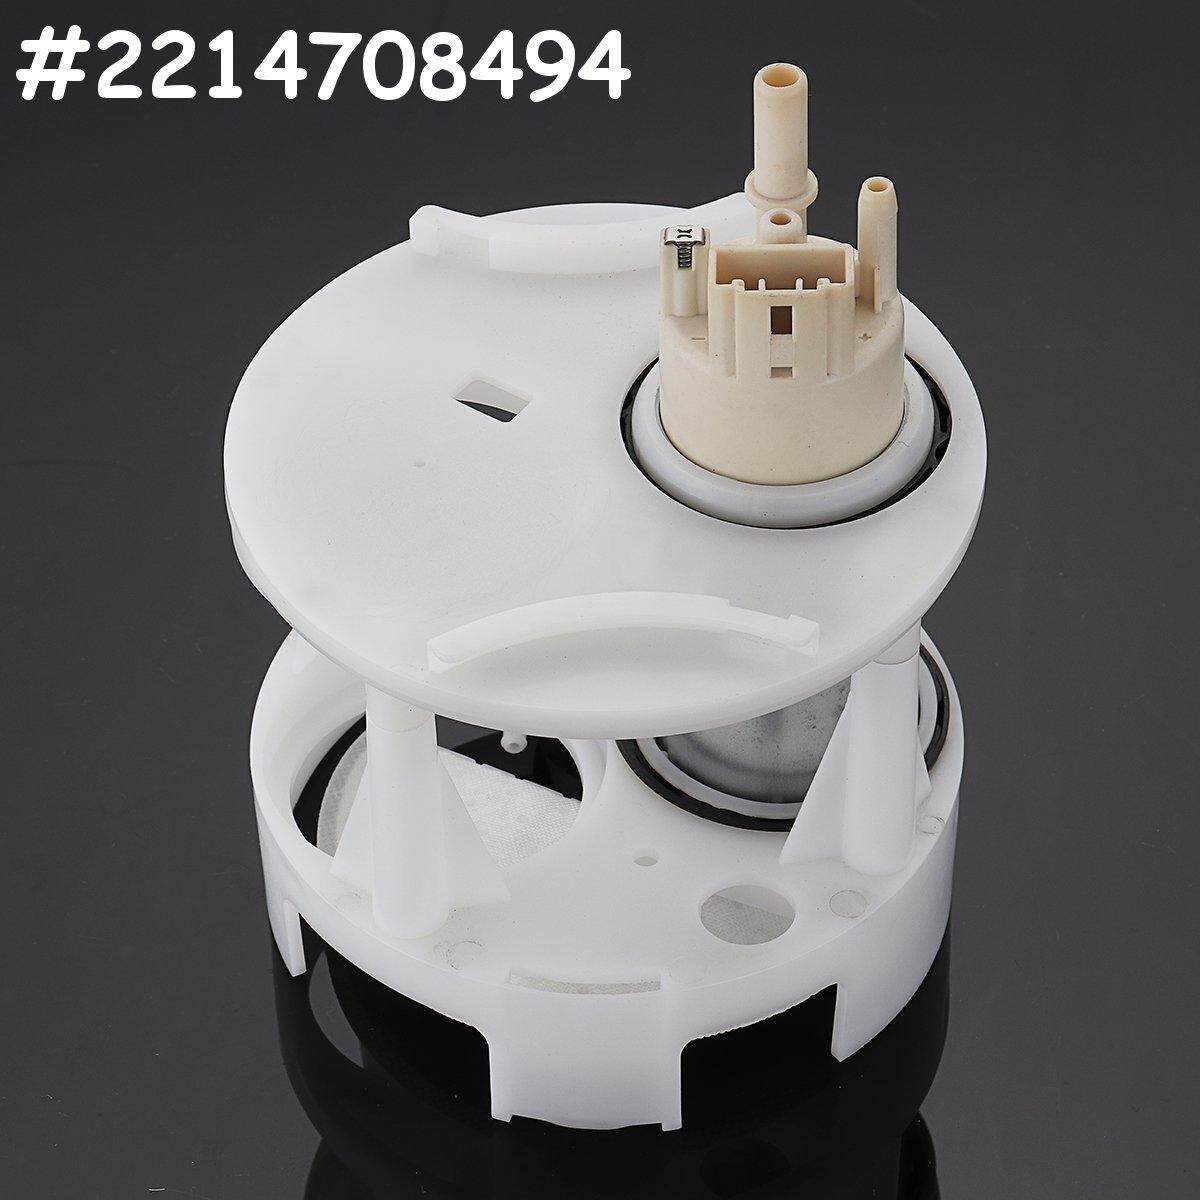 Fuel Pumps Buy At Best Price In Malaysia Lazada New Electric Pump Gas Vw With Sending Unit Volkswagen Beetle Assembly For Mercedes Benz W221 S550 Cl550 2214708494